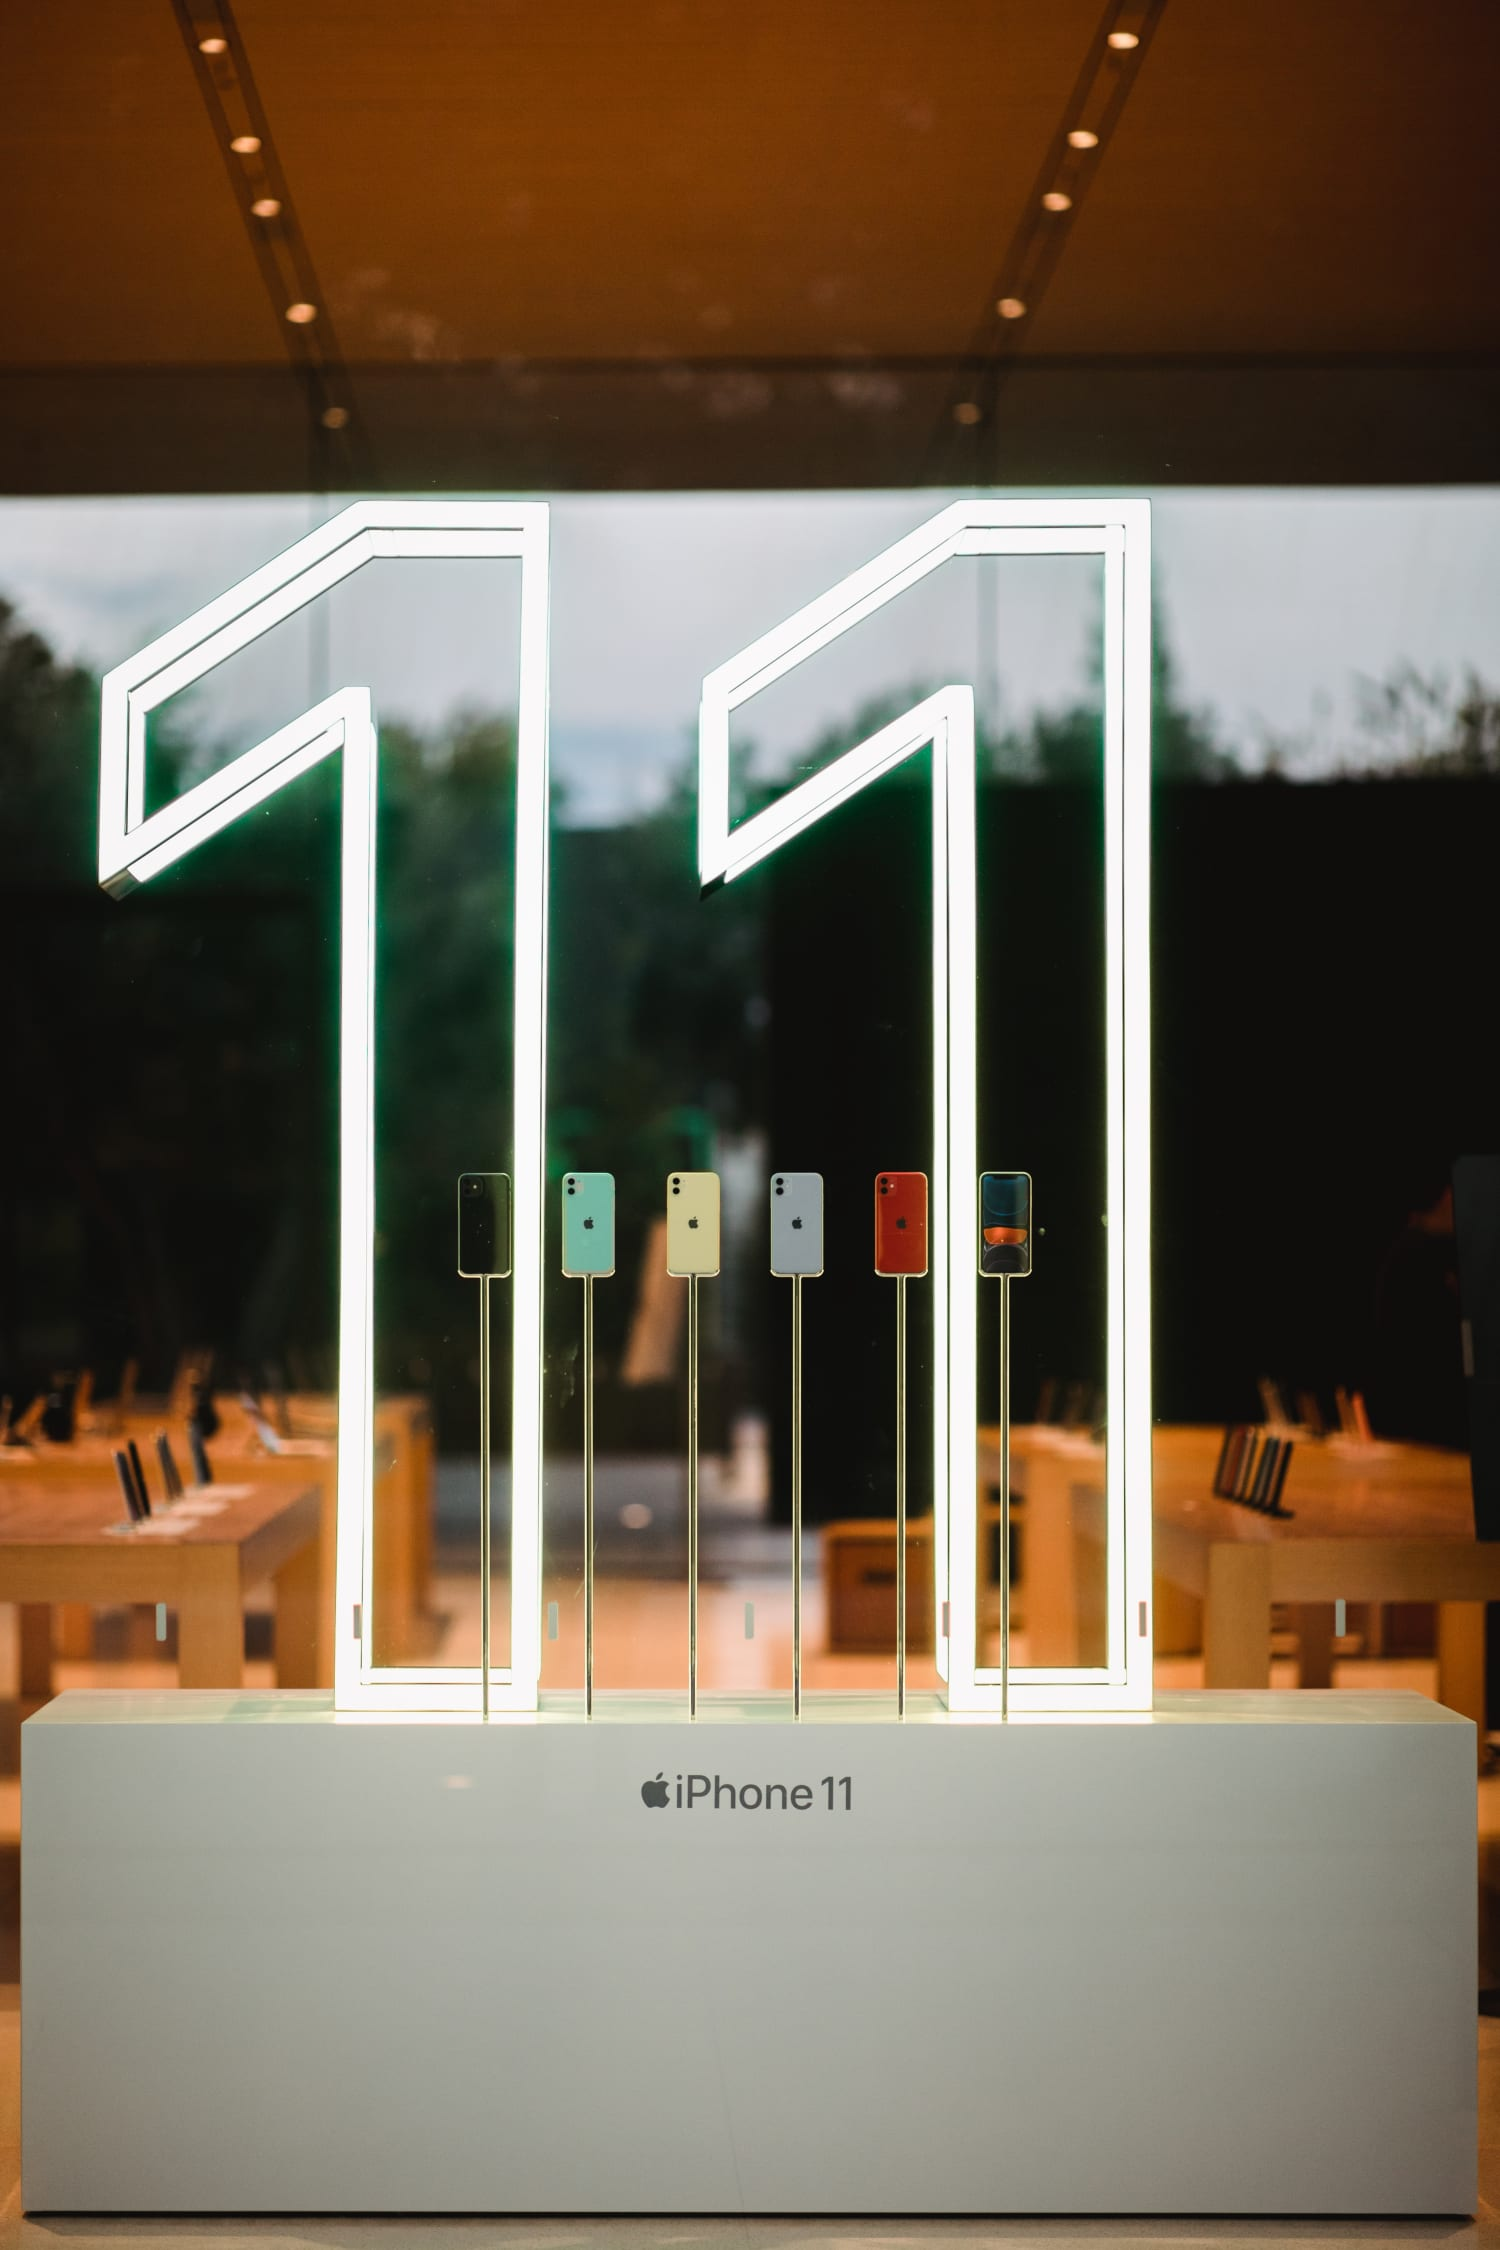 iphone-11-stands-out-as-the-must-have-phone-in-several-markets-20200817-1